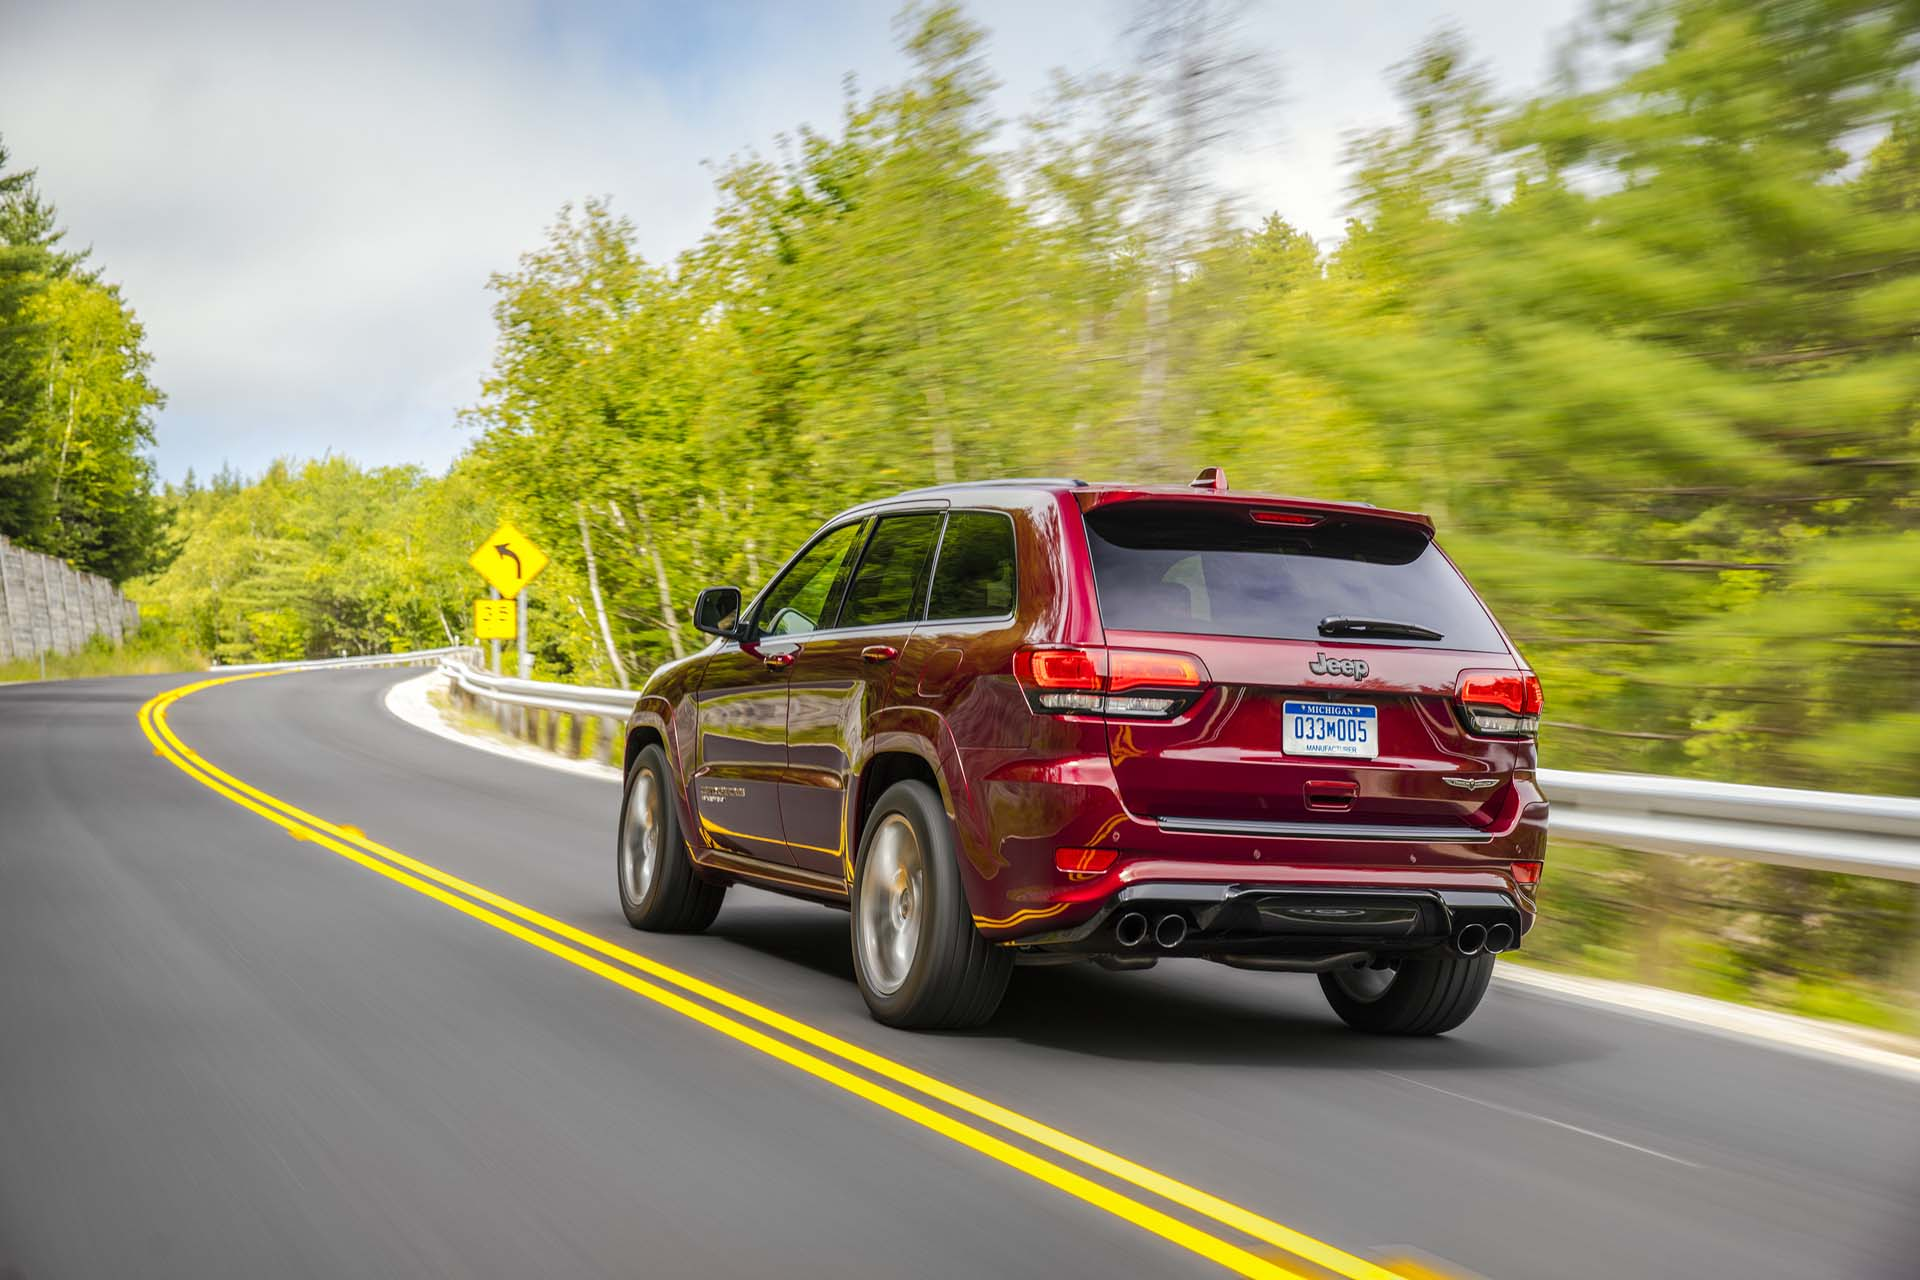 Jeep Cherokee 3Rd Row >> 3 Row Jeep Grand Cherokee Will Reportedly Be Built At Idled Detroit